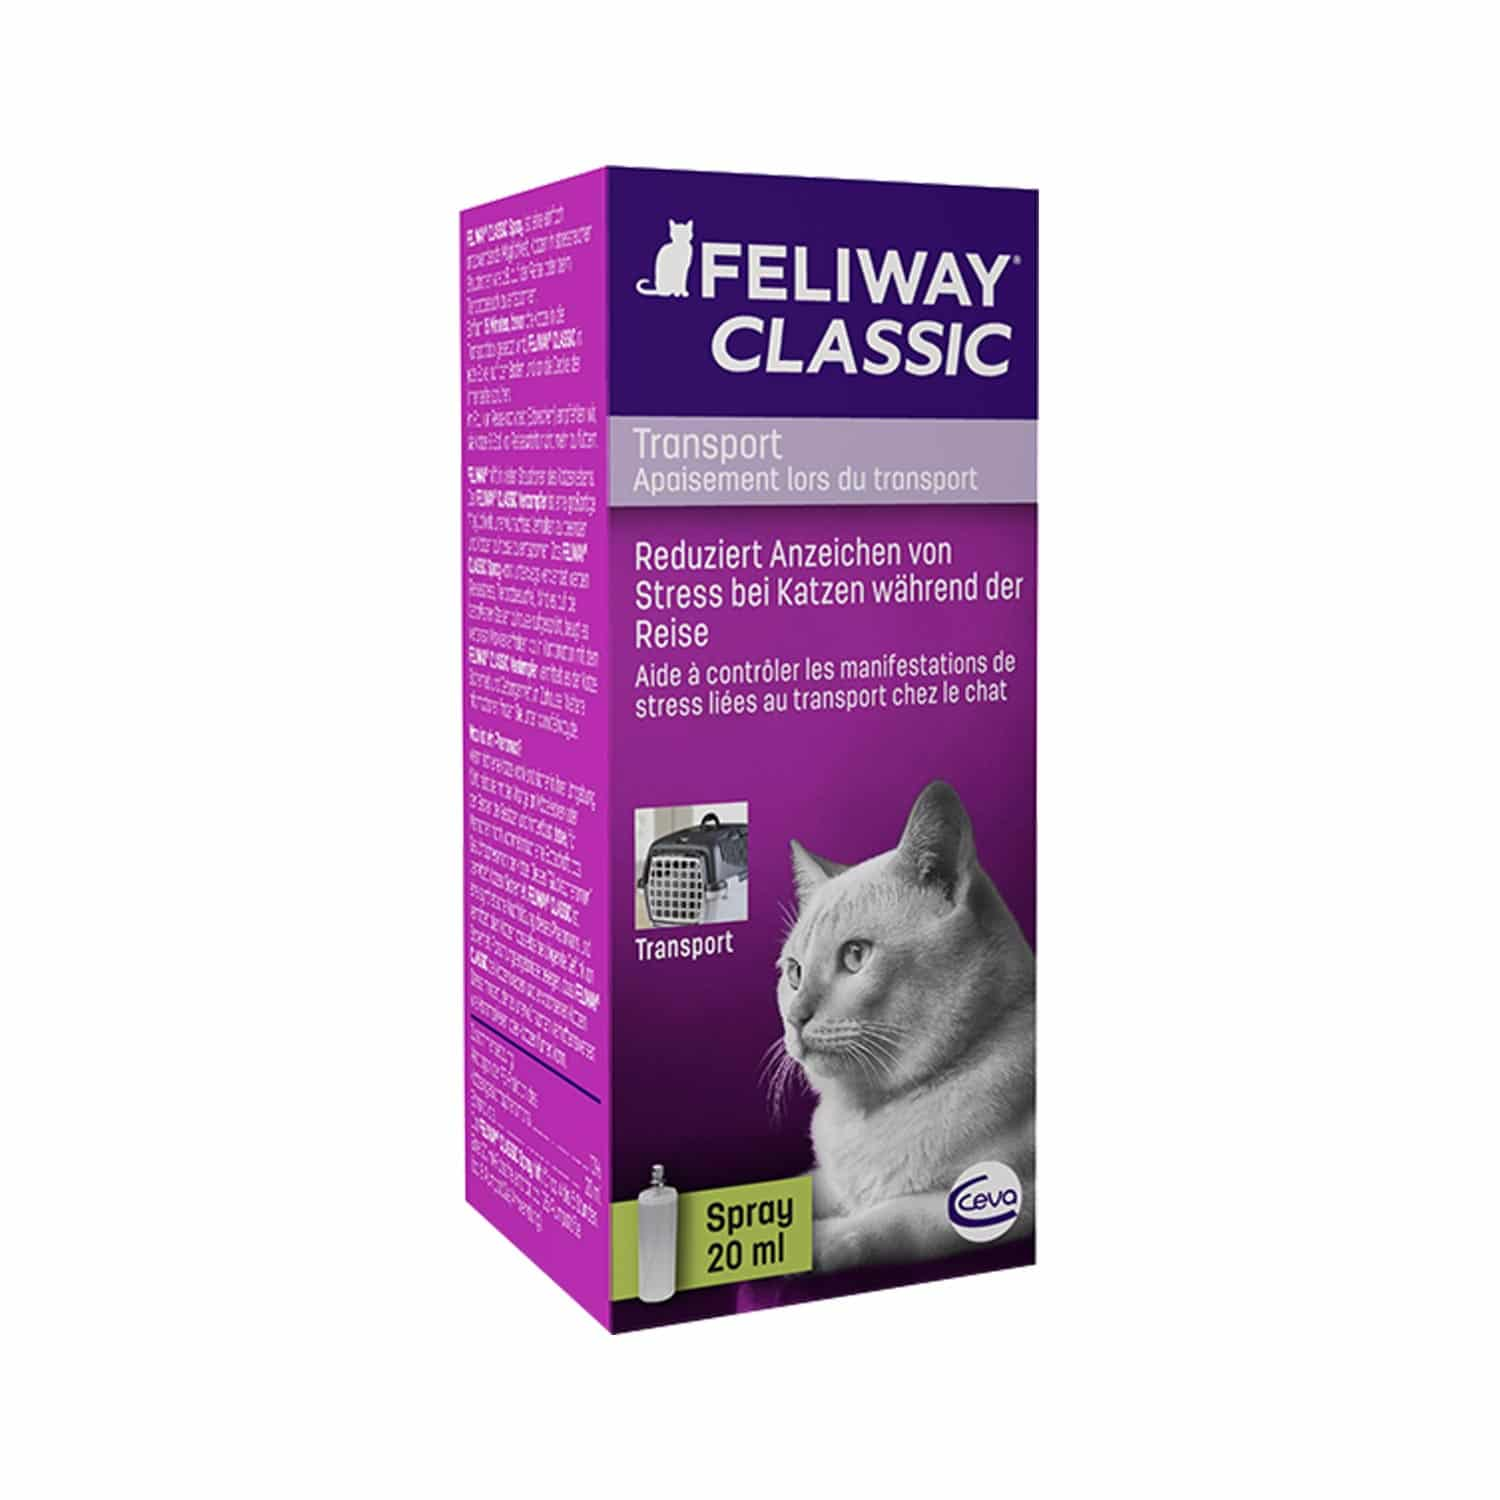 https://static.praxisdienst.com/out/pictures/generated/product/1/1500_1500_100/191810_feliway_spray_20ml.jpg